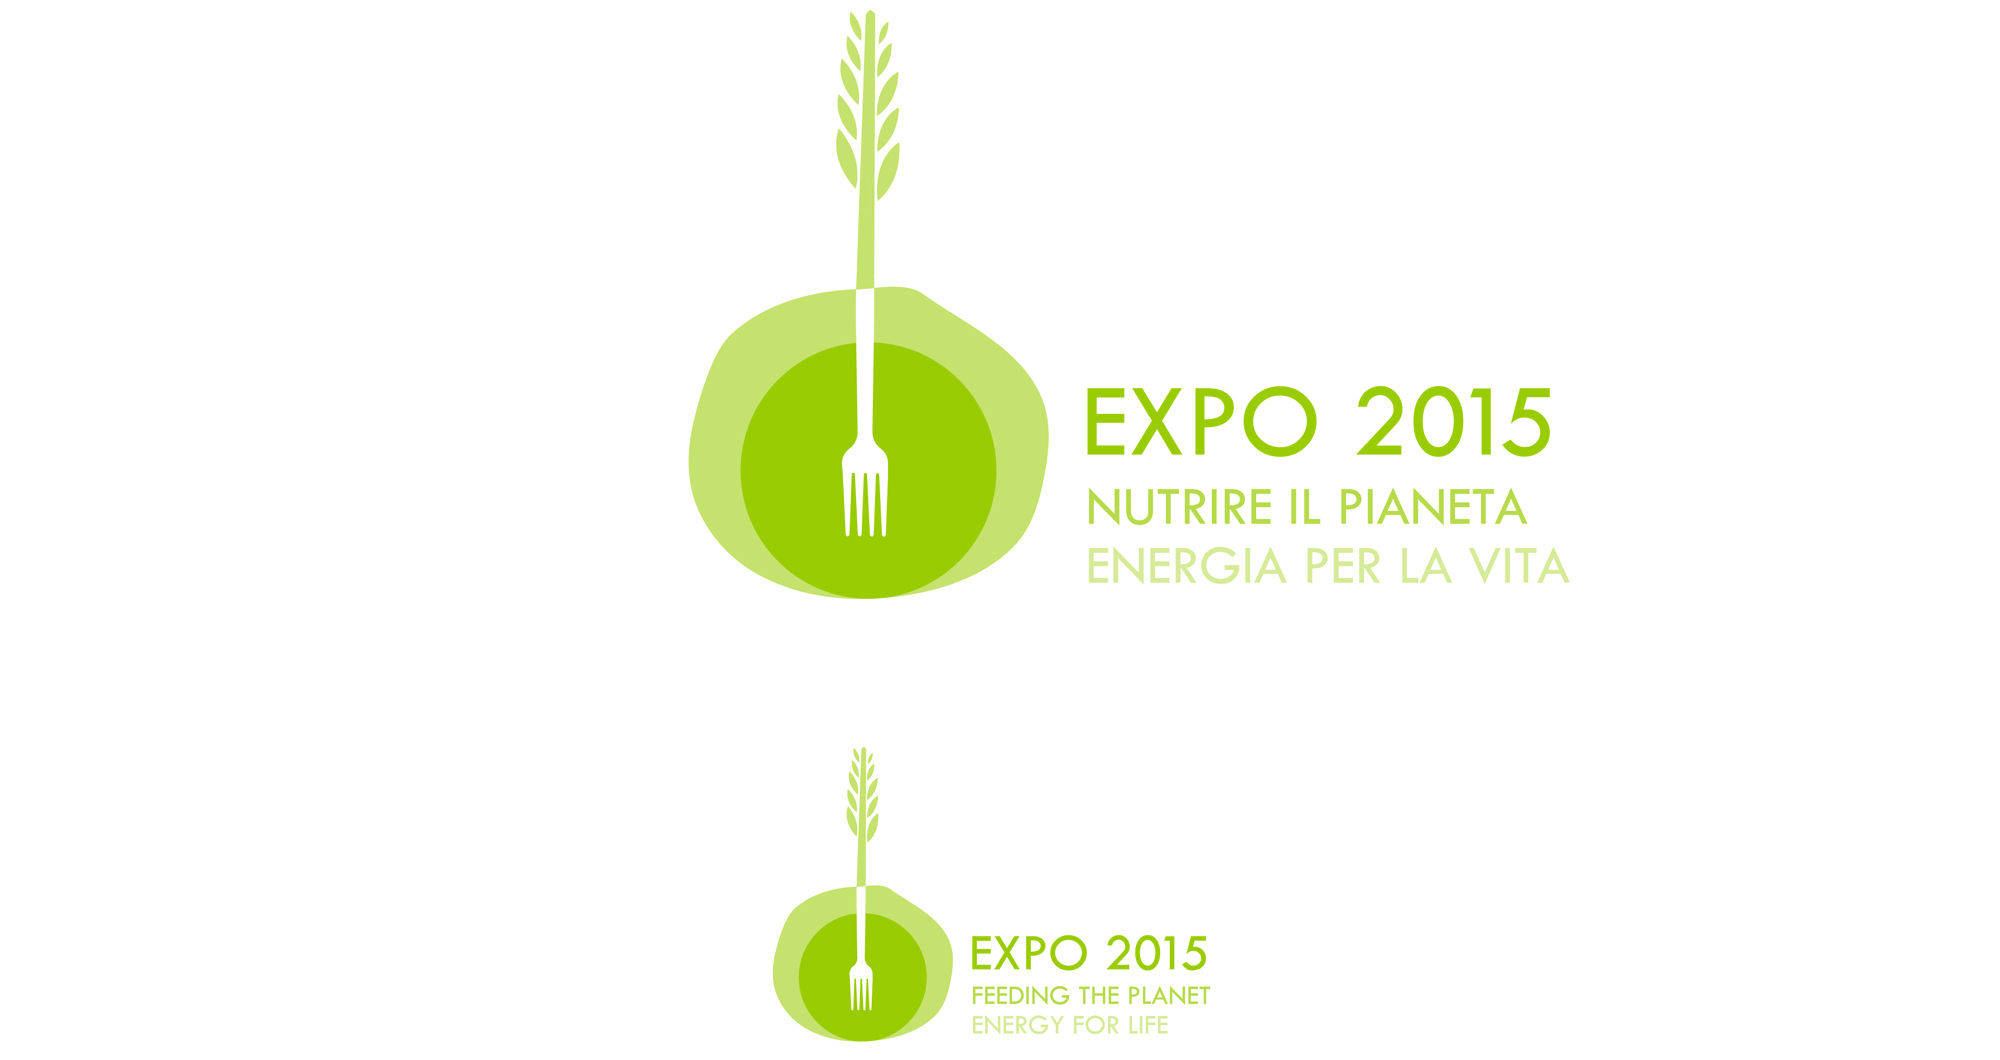 EXPO 2015 logotype